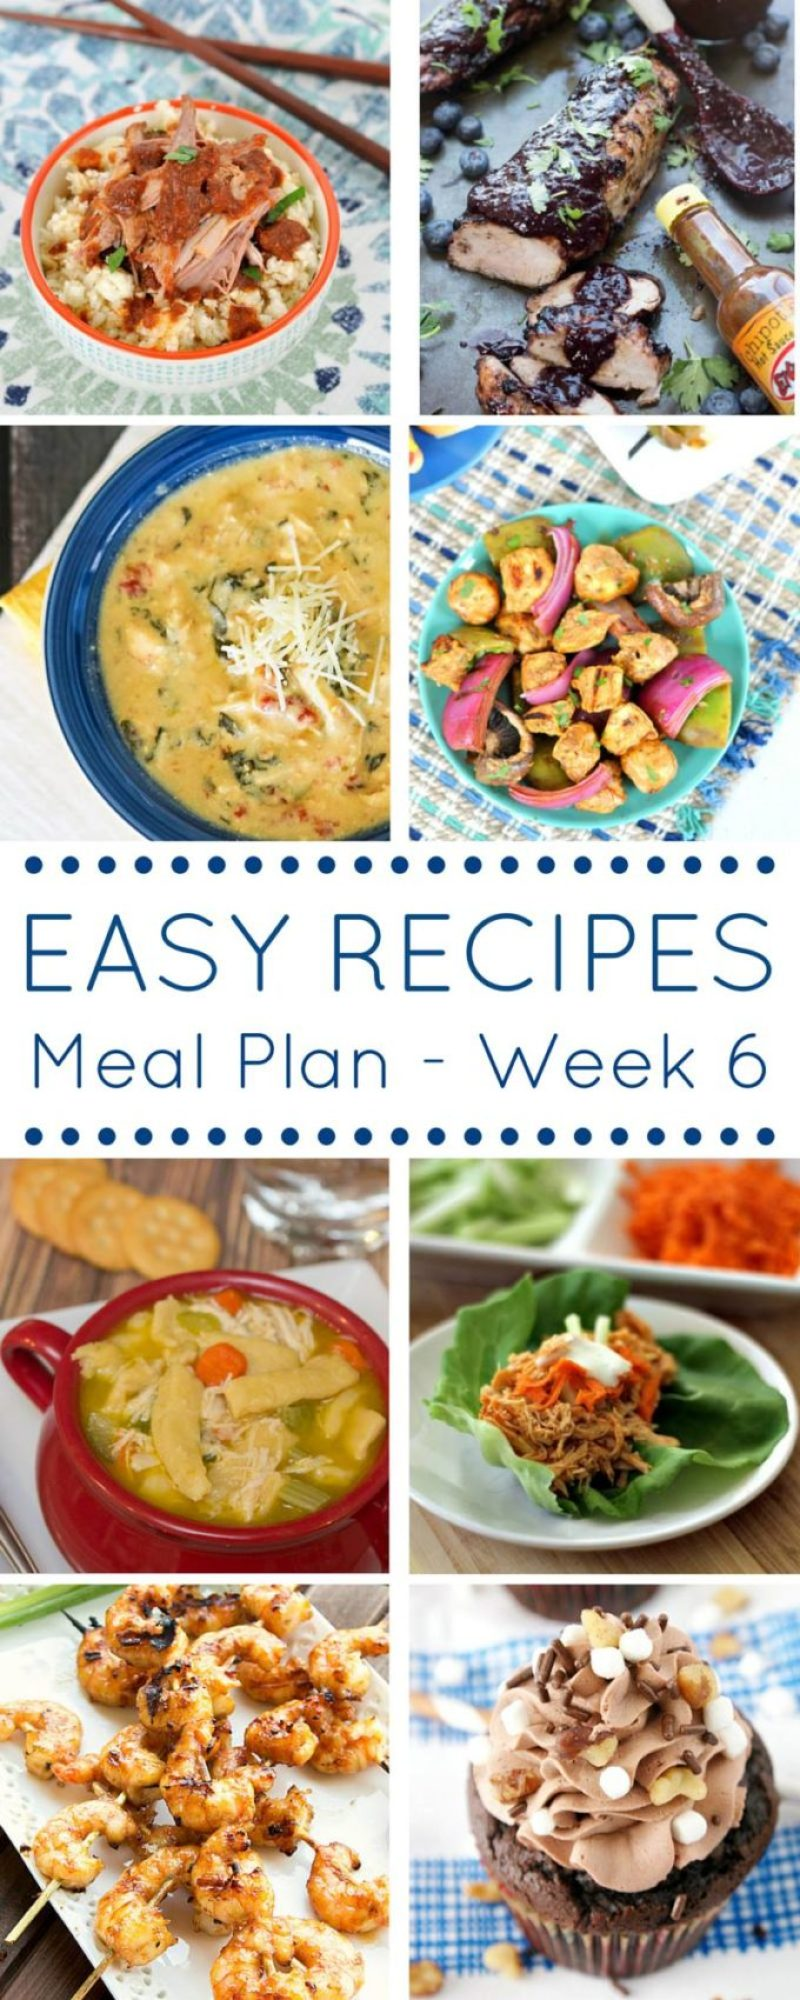 week 6 meal plan pin